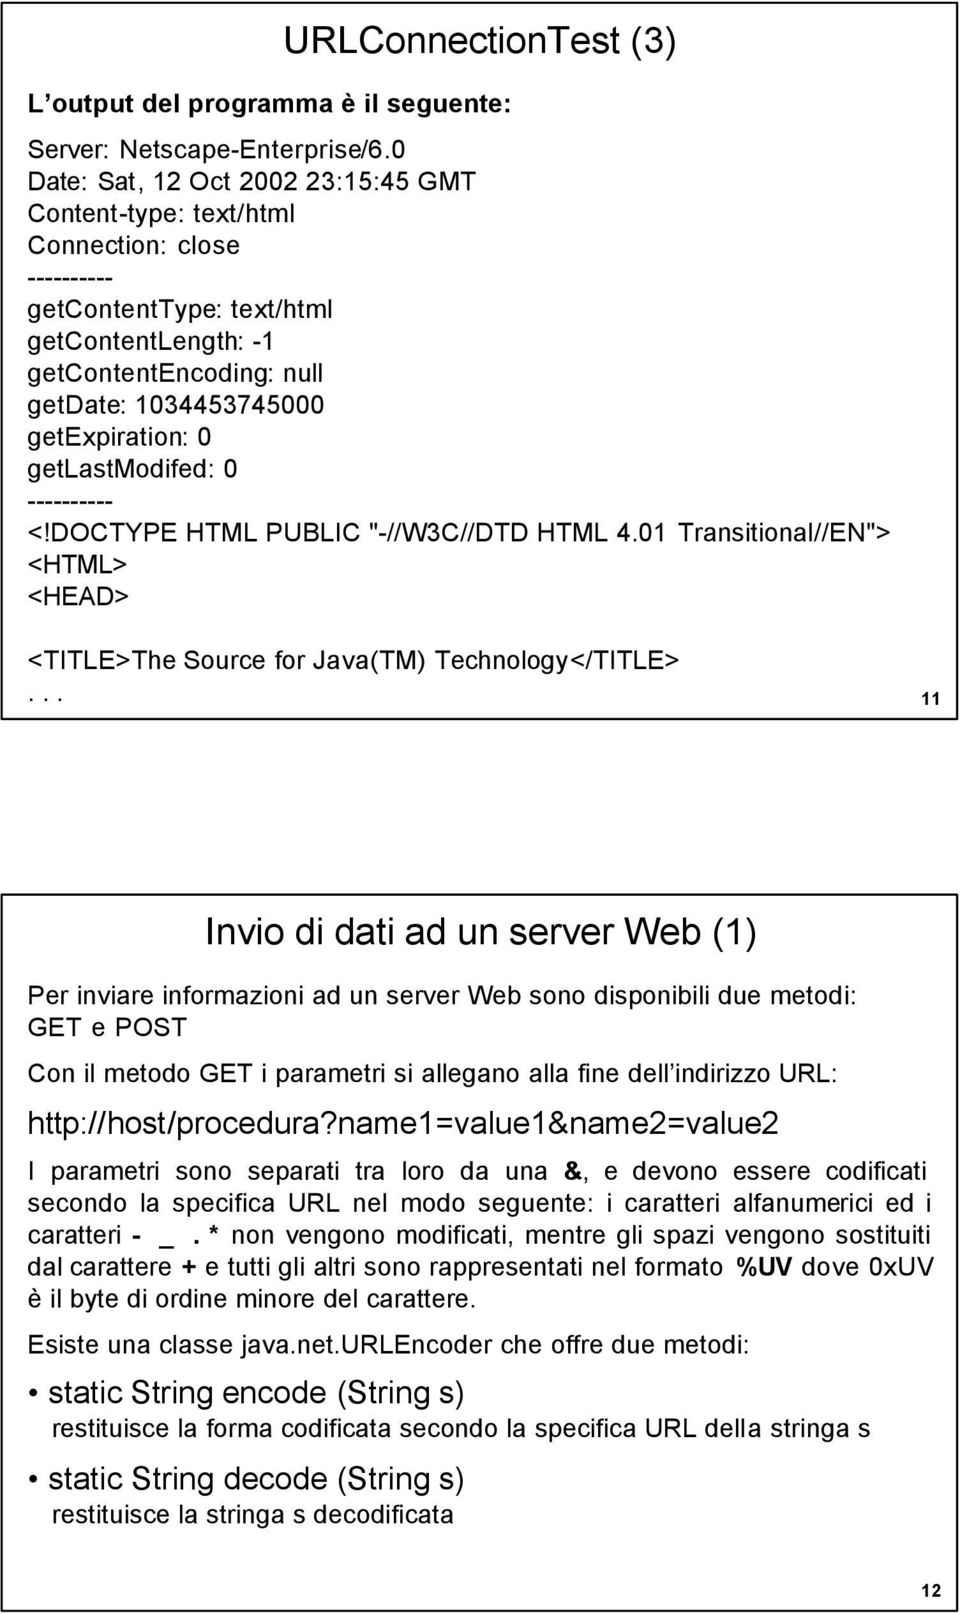 "getexpiration: 0 getlastmodifed: 0 ---------- <!DOCTYPE HTML PUBLIC ""-//W3C//DTD HTML 4.01 Transitional//EN""> <HTML> <HEAD> <TITLE>The Source for Java(TM) Technology</TITLE>."